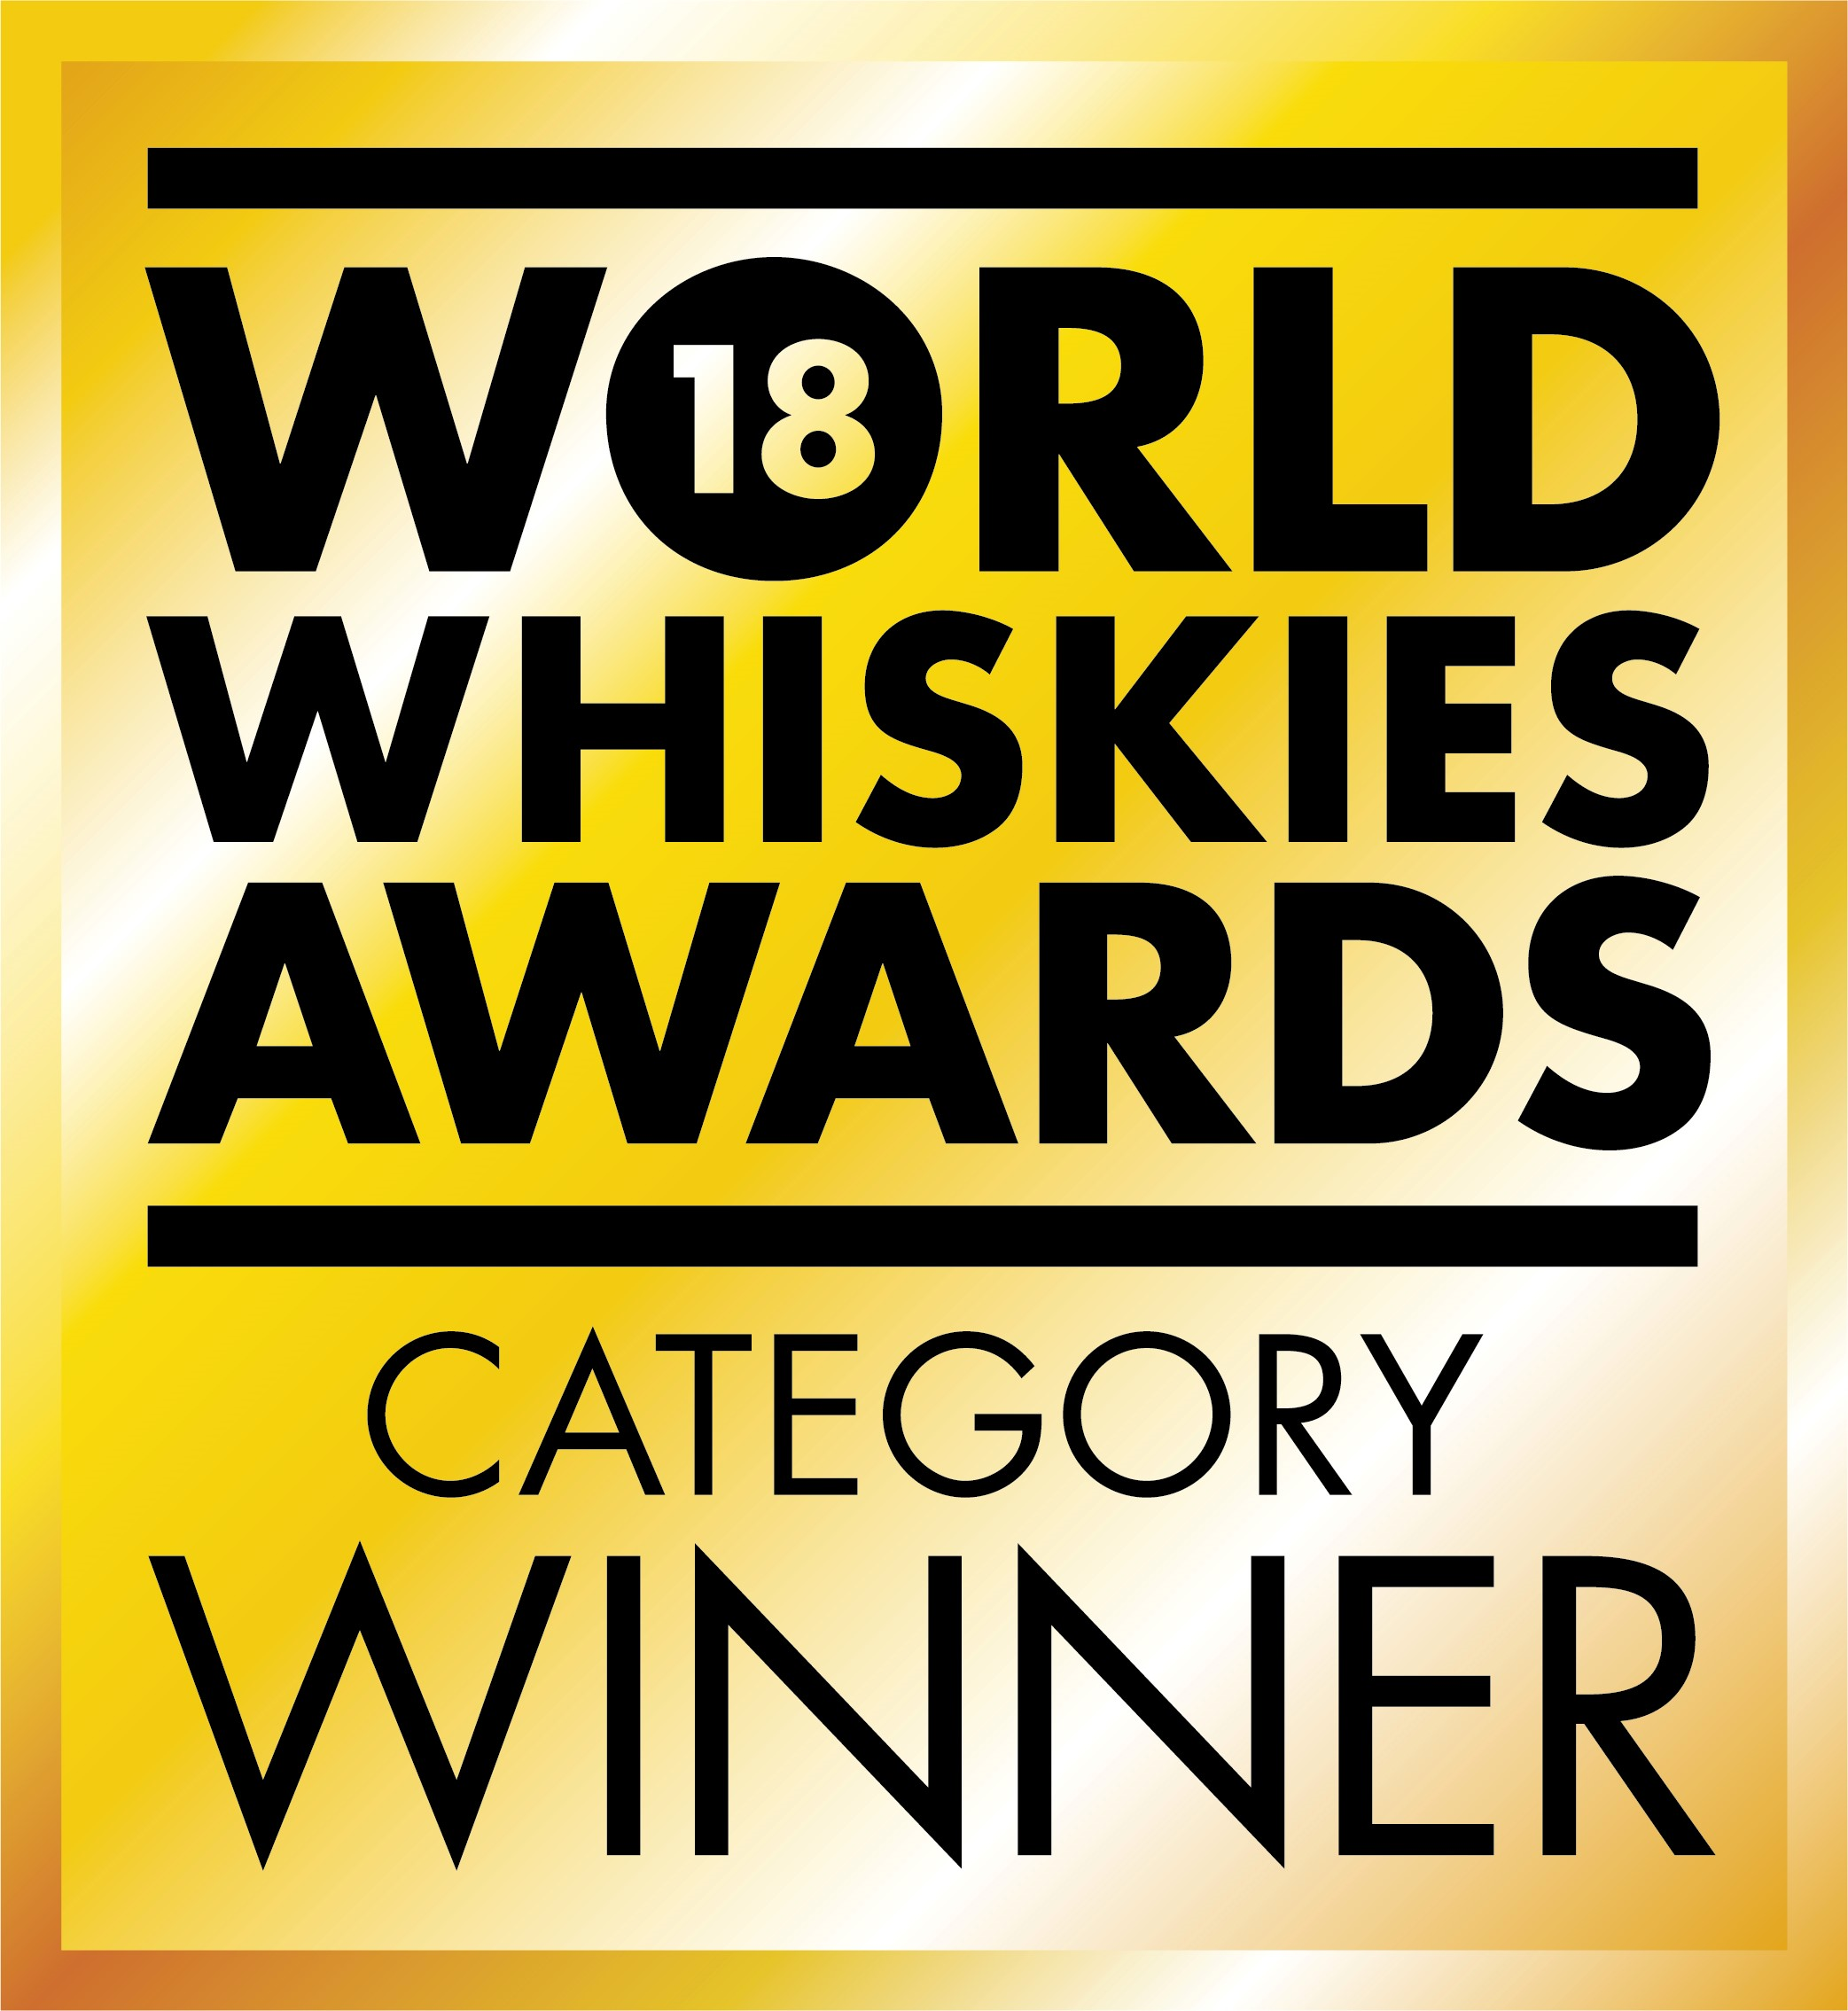 Category Winner SB WWA